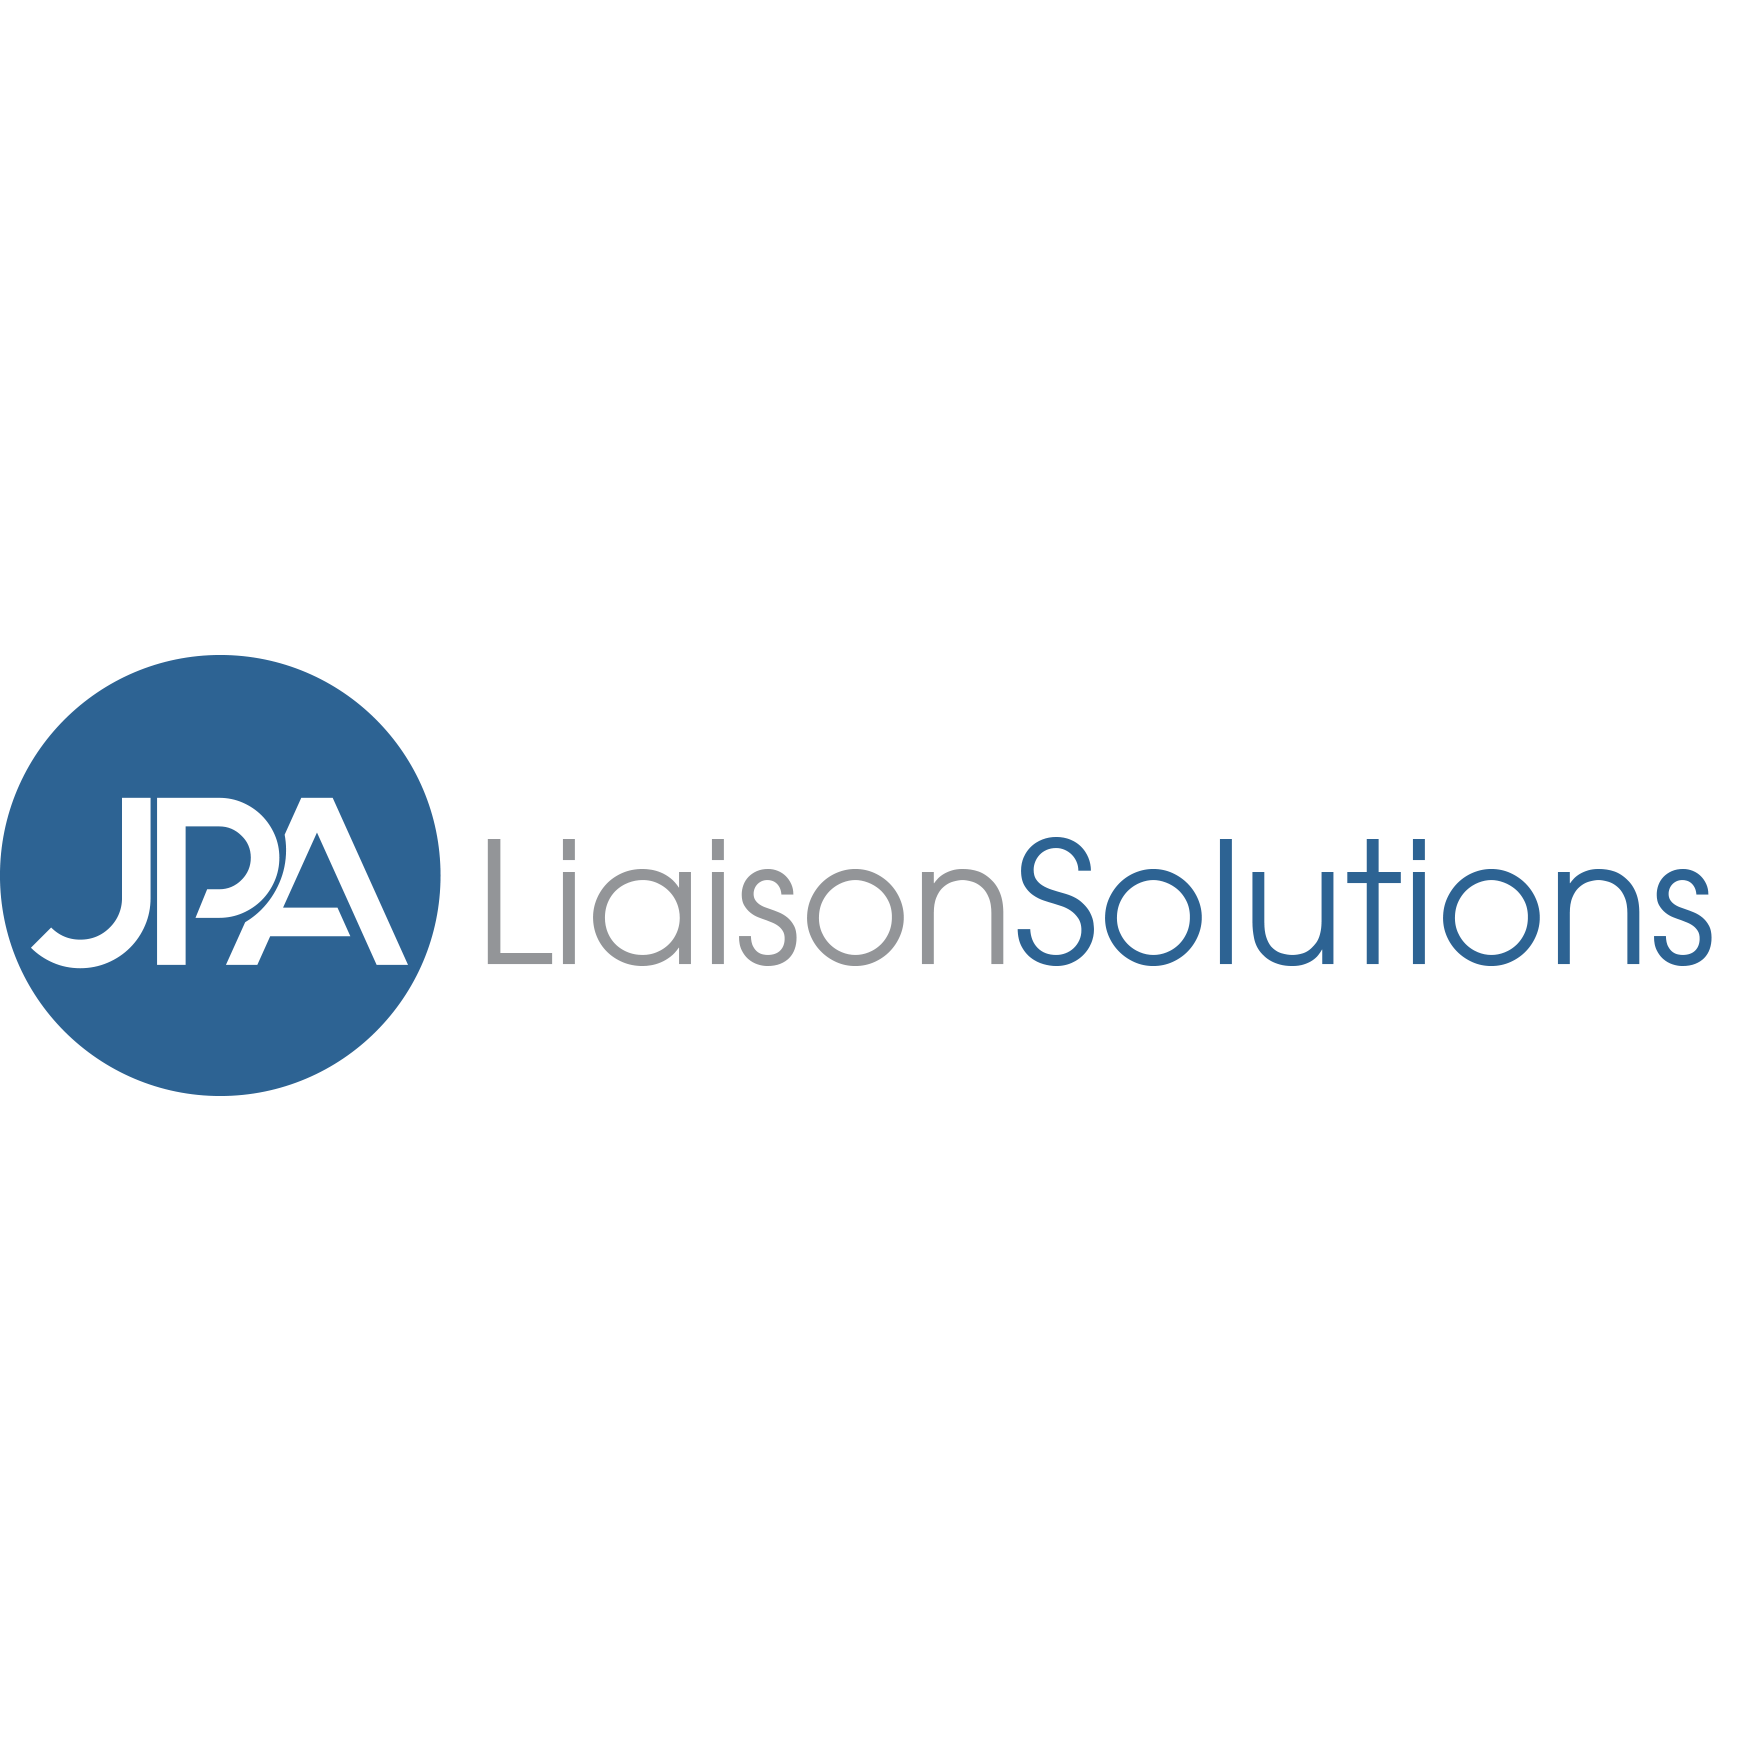 Jpa Liaison Solutions - DBA- Doctors4accidents image 5